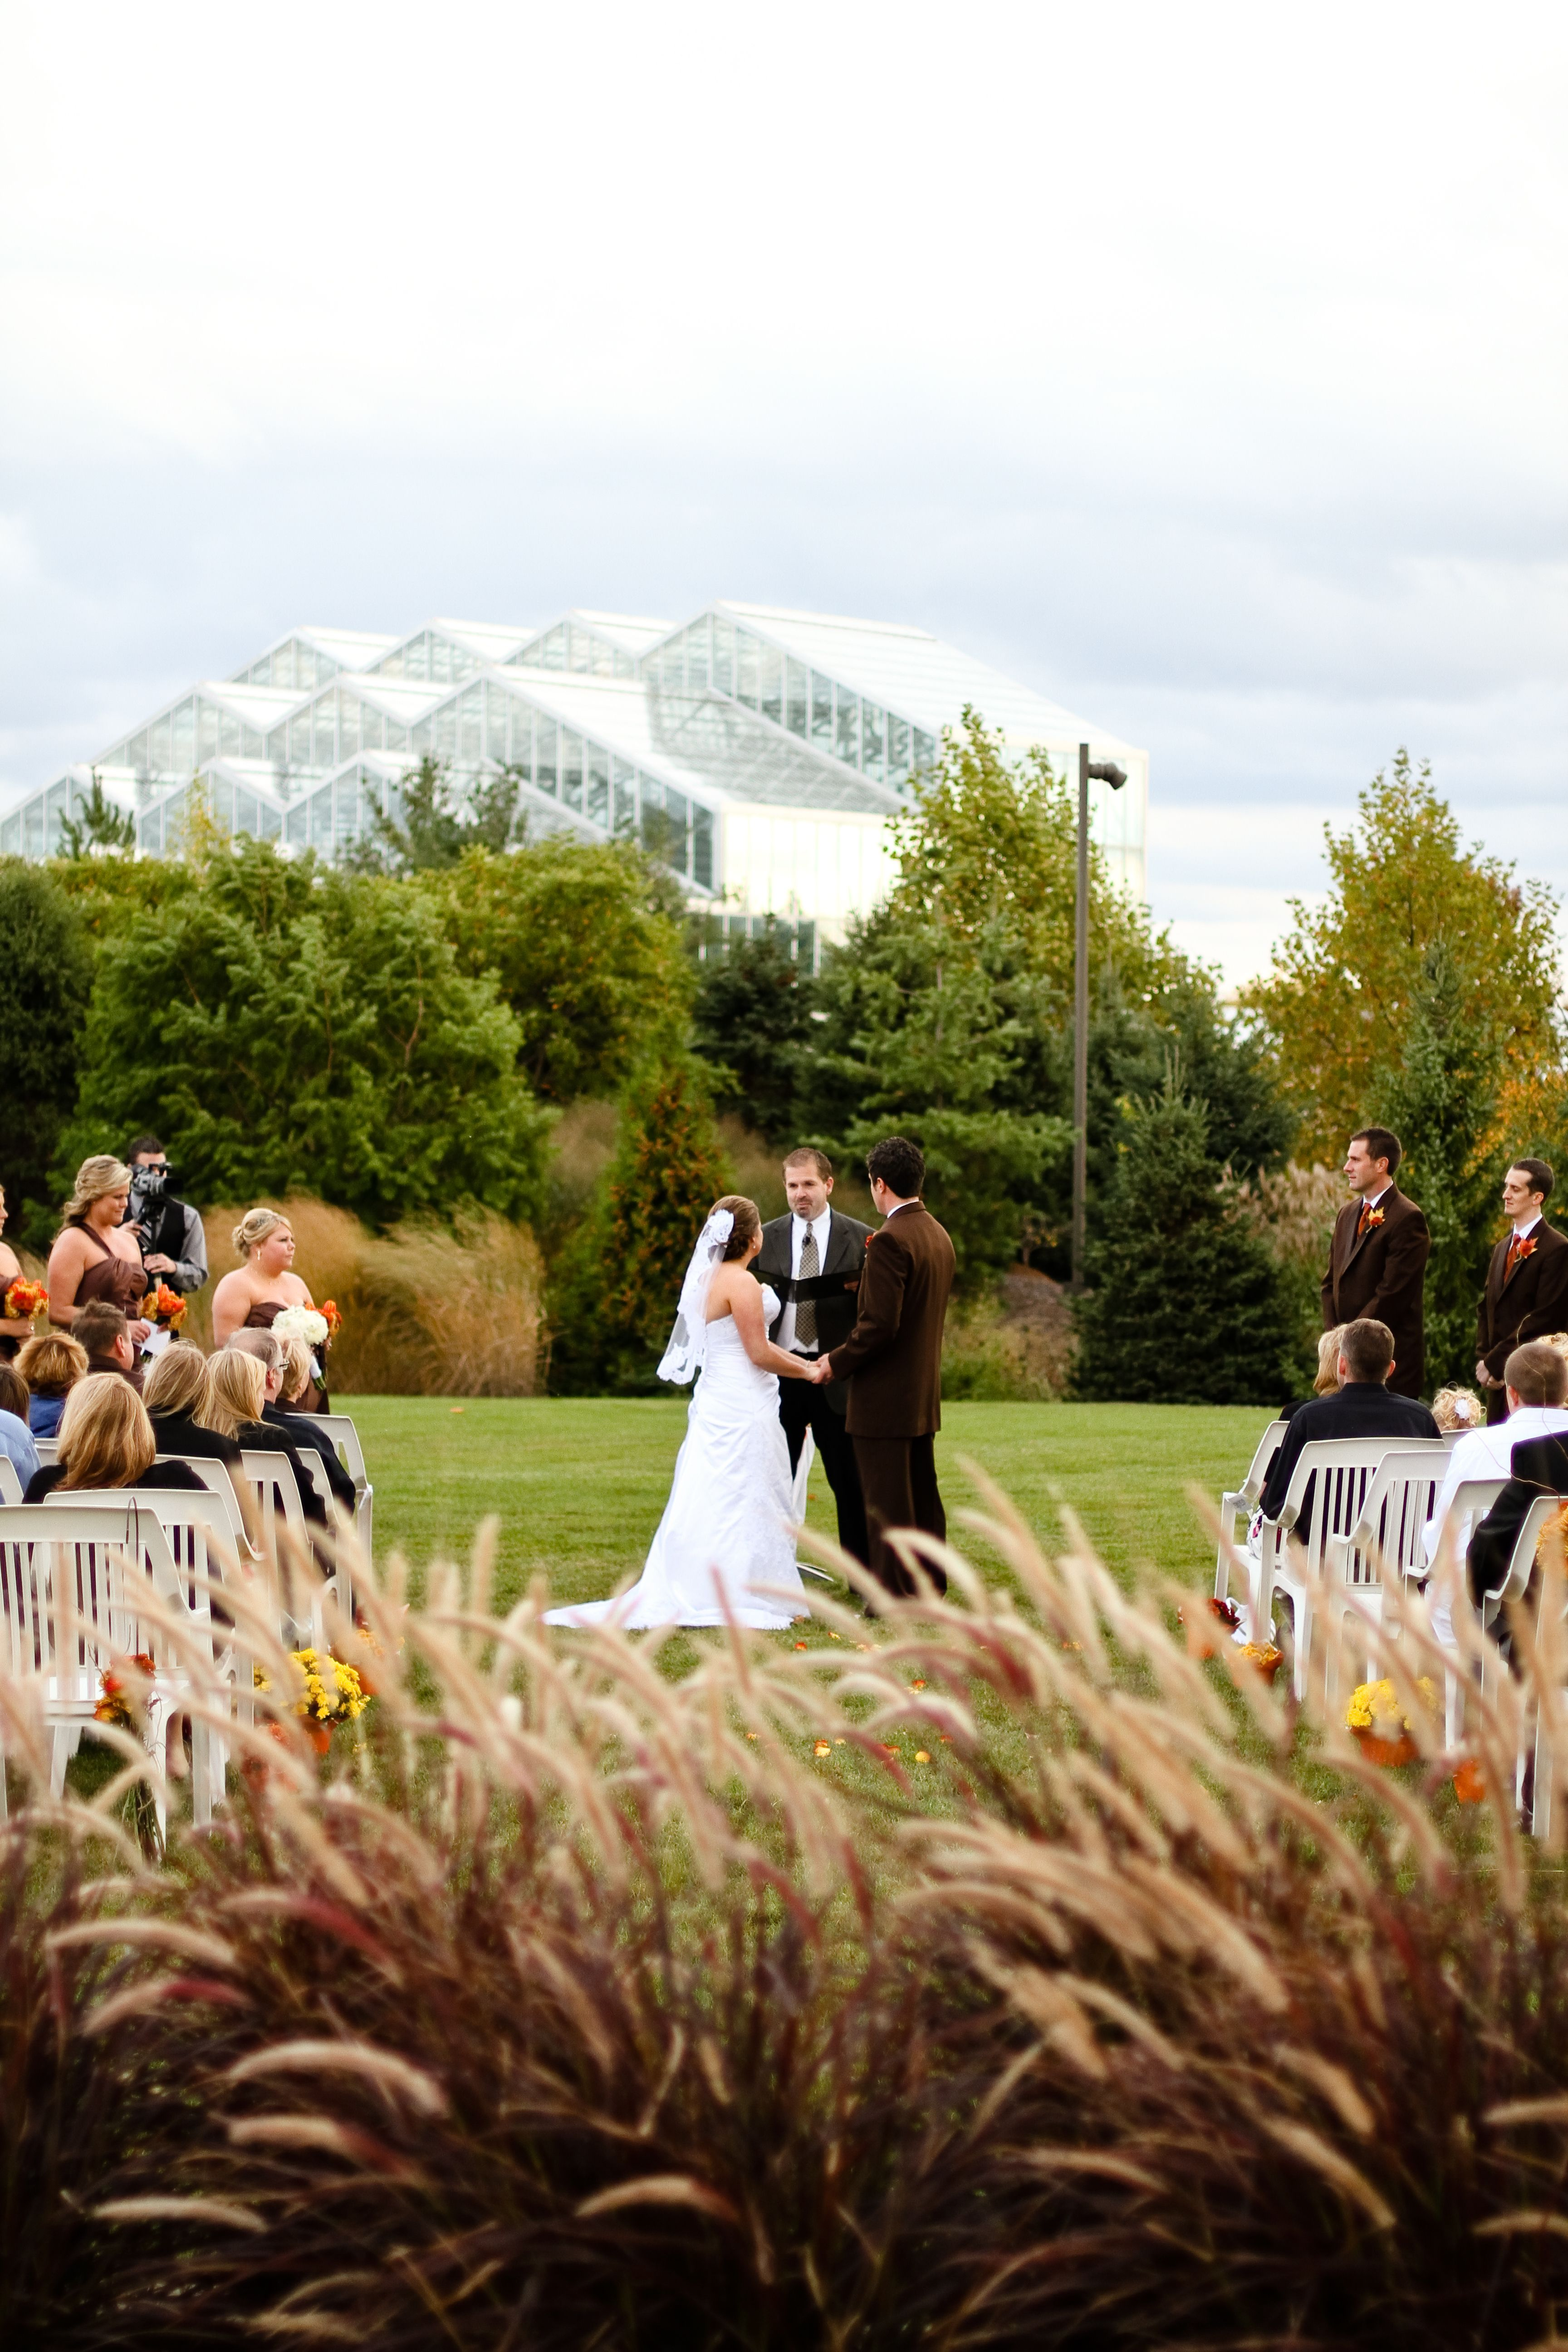 Outdoor fall wedding at meijer gardens jesse d green photography